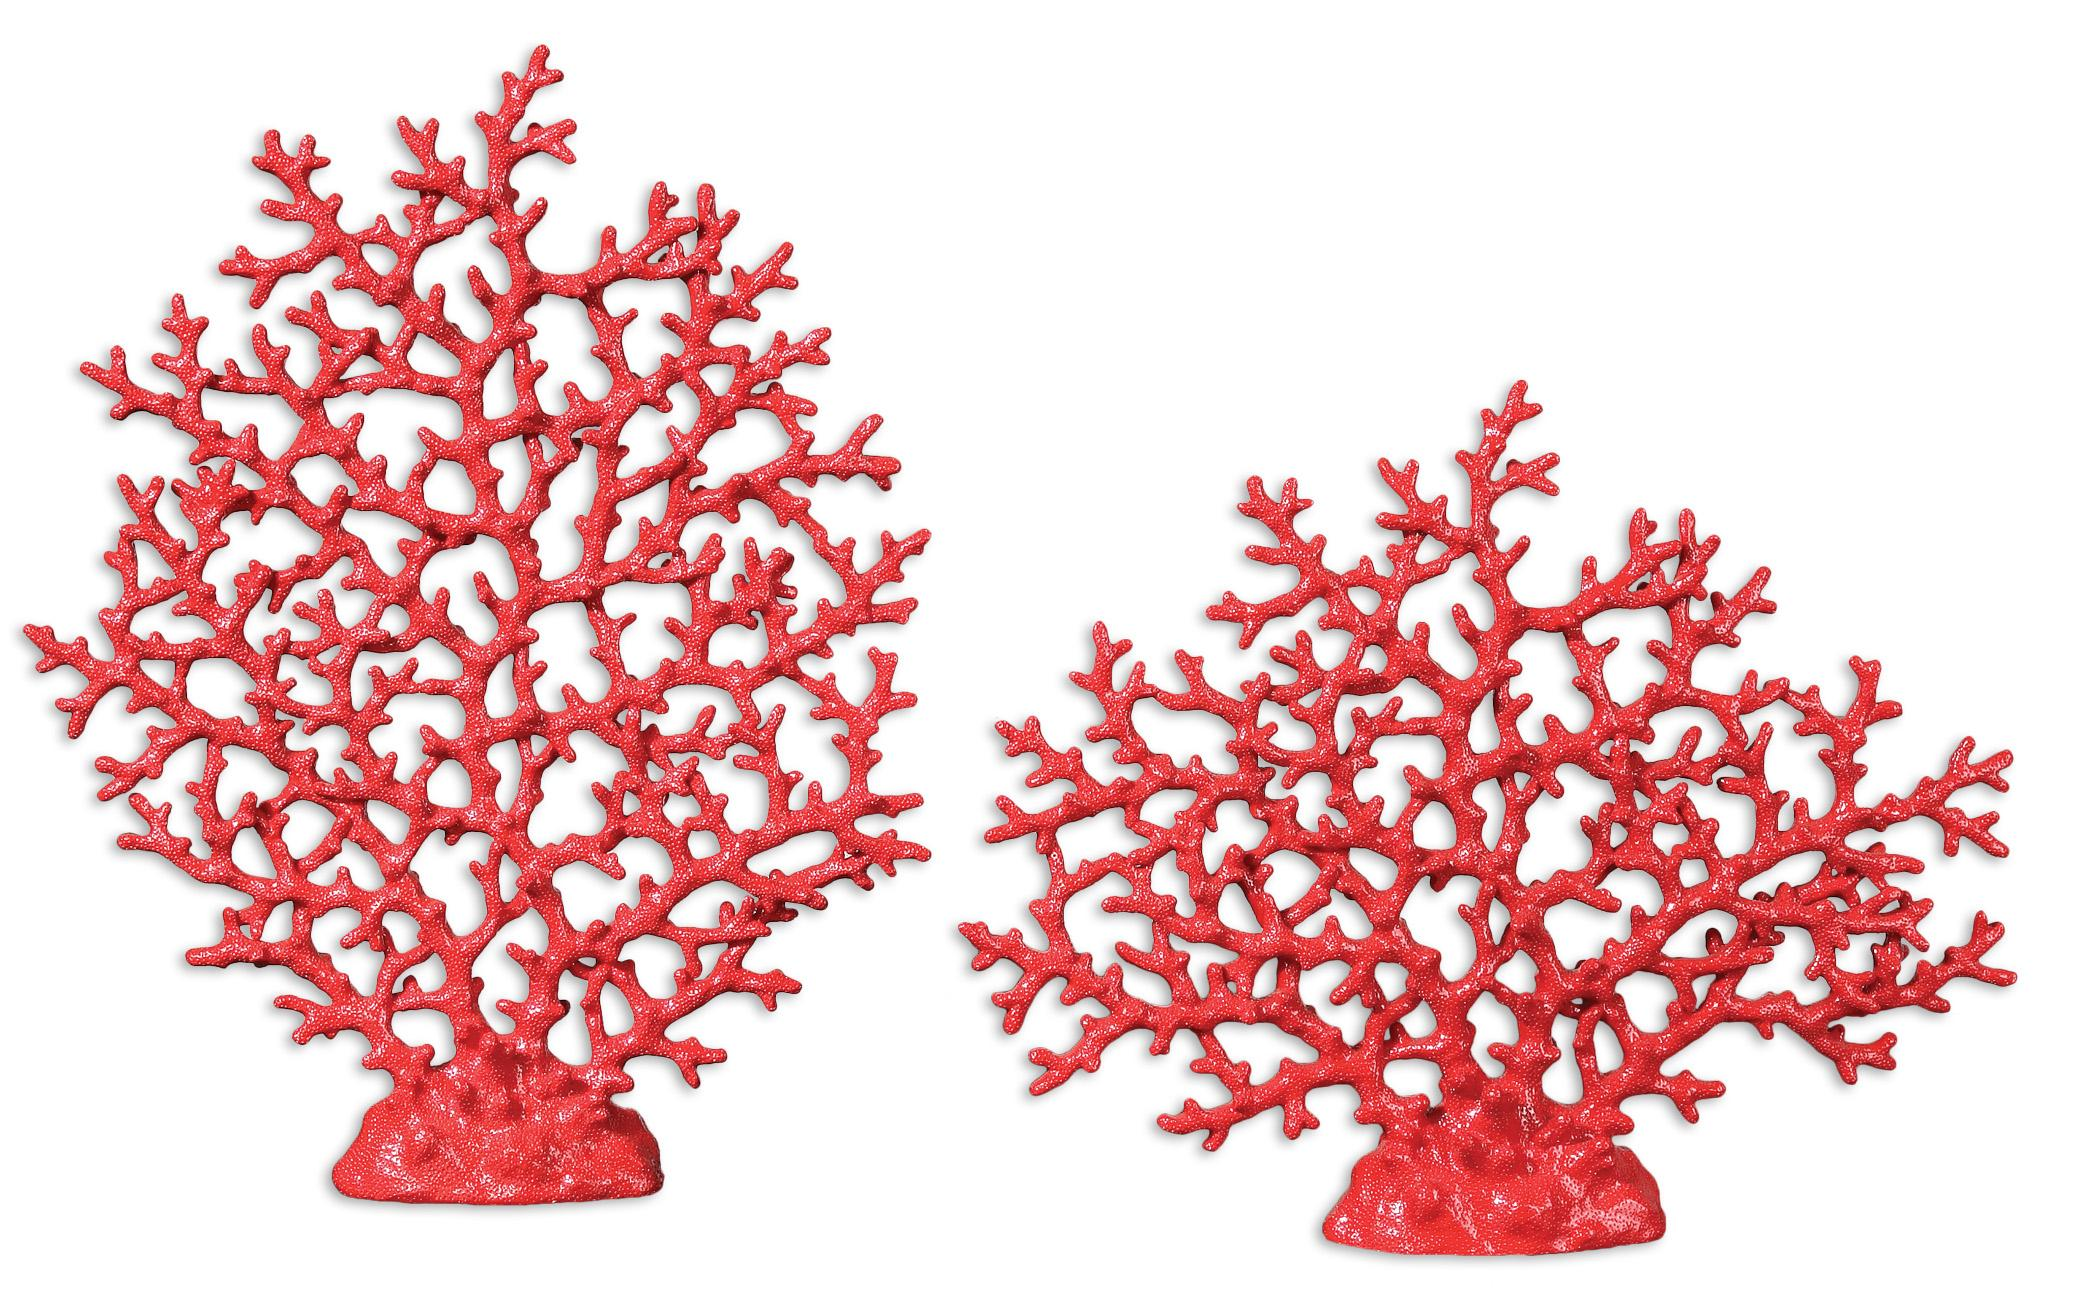 Uttermost Accessories Red Coral Sculpture Set of 2 - Item Number: 19801